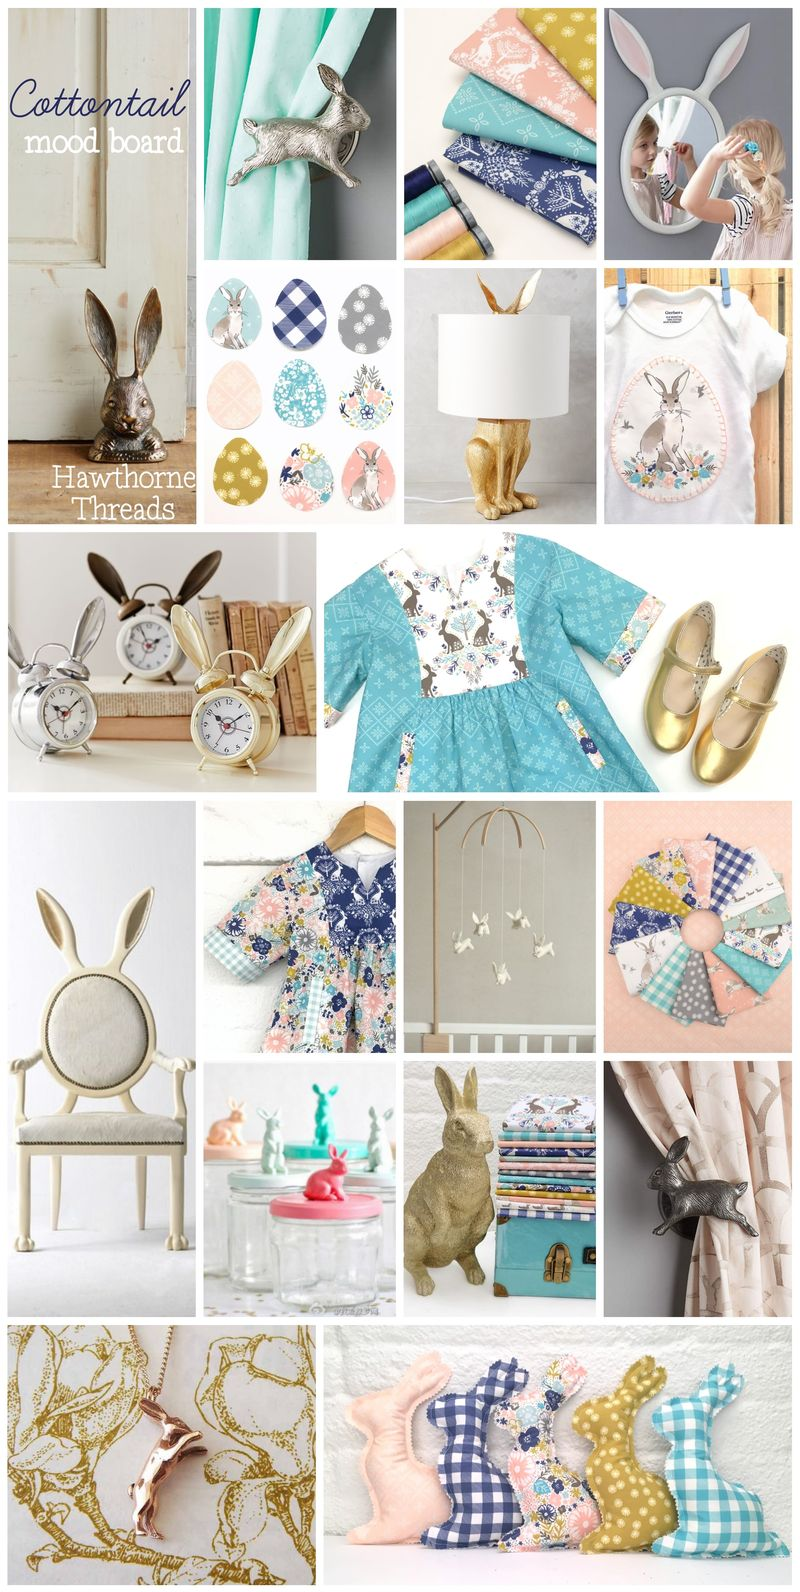 Cottontail Fabric Mood Board